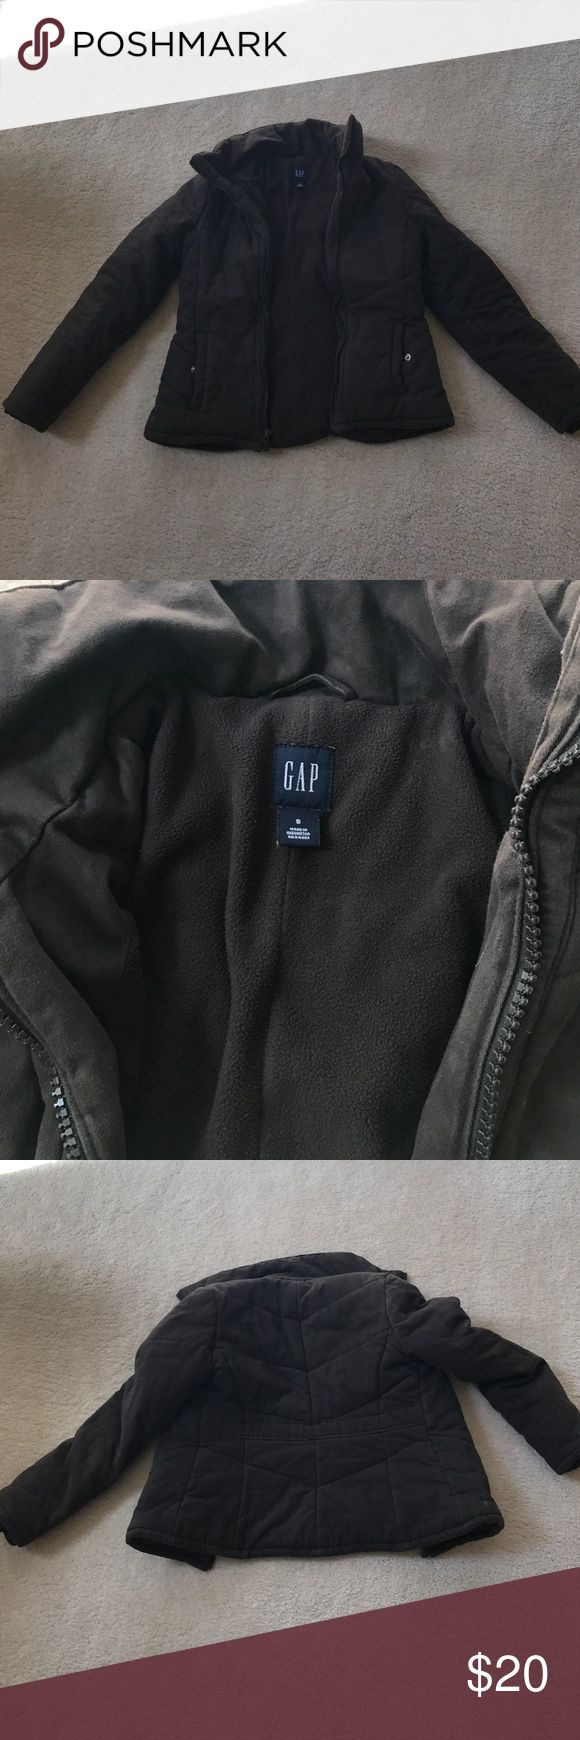 Gap women coat brown excellent condition size S Women size: S pre-owned non smoker GAP Jackets & Coats Trench Coats